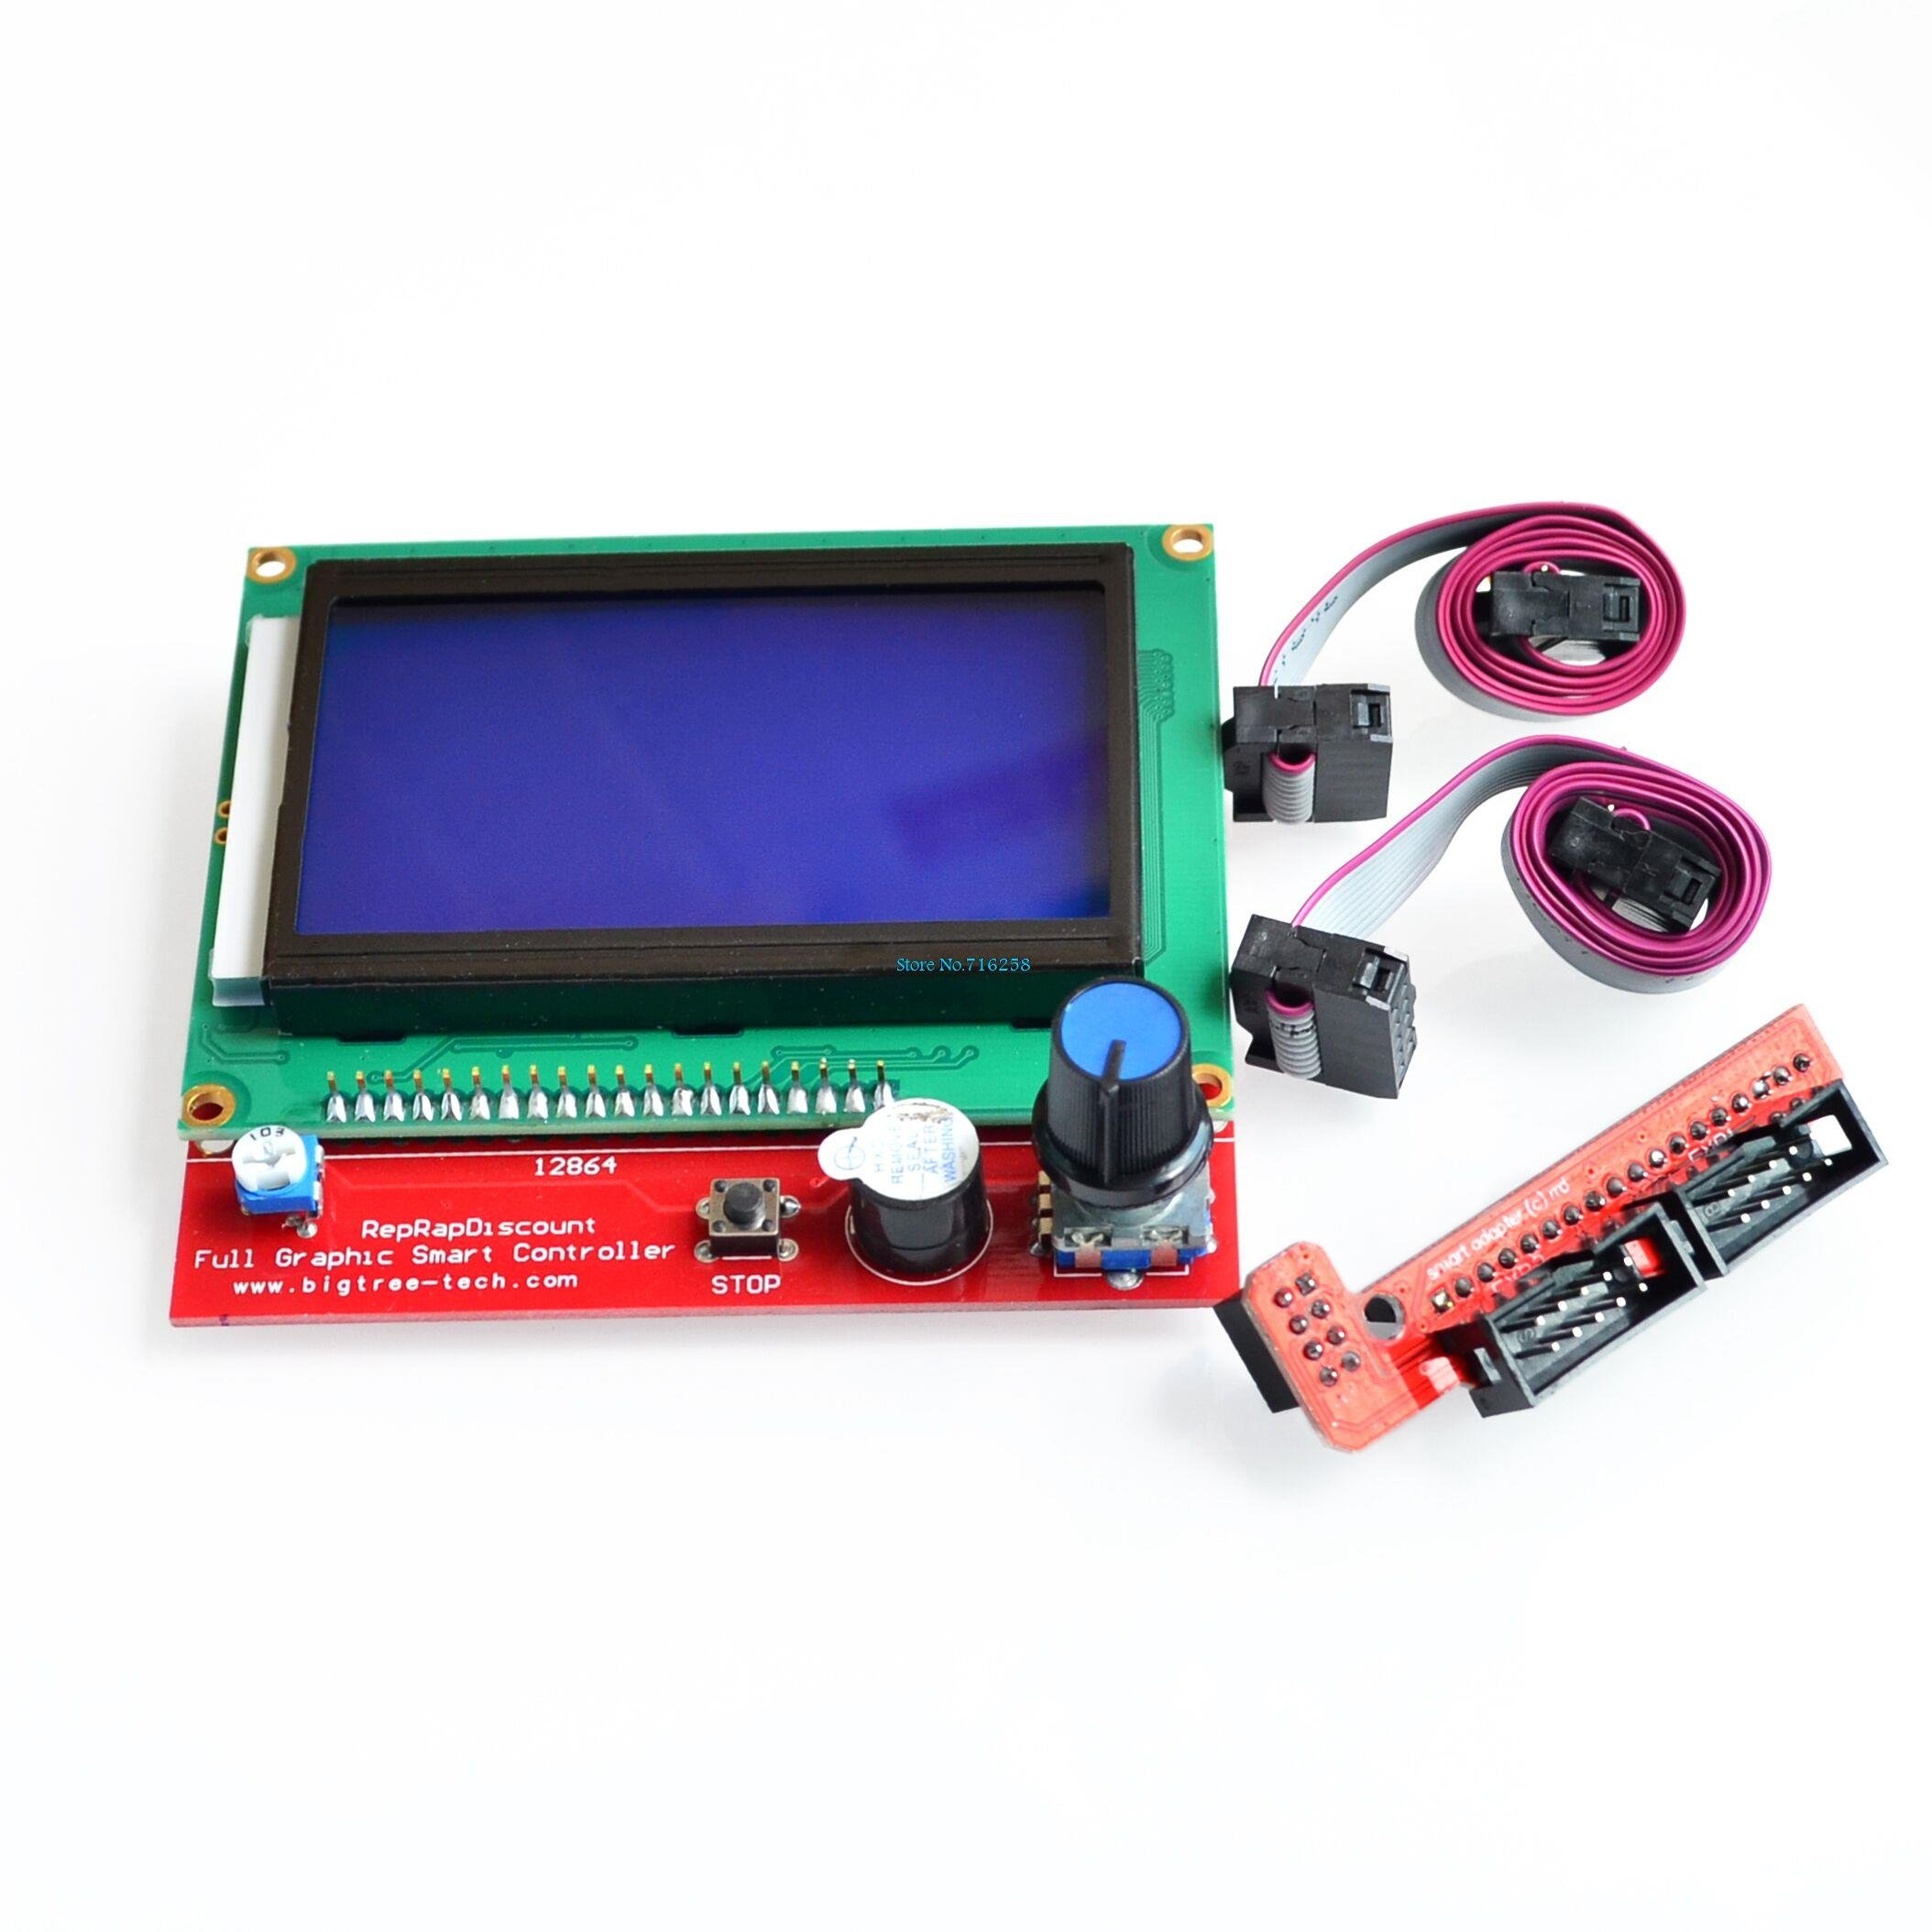 Ants-Store - 2sets/lot 3D printer smart controller RAMPS 1.4 LCD 12864 LCD control panel blue screen